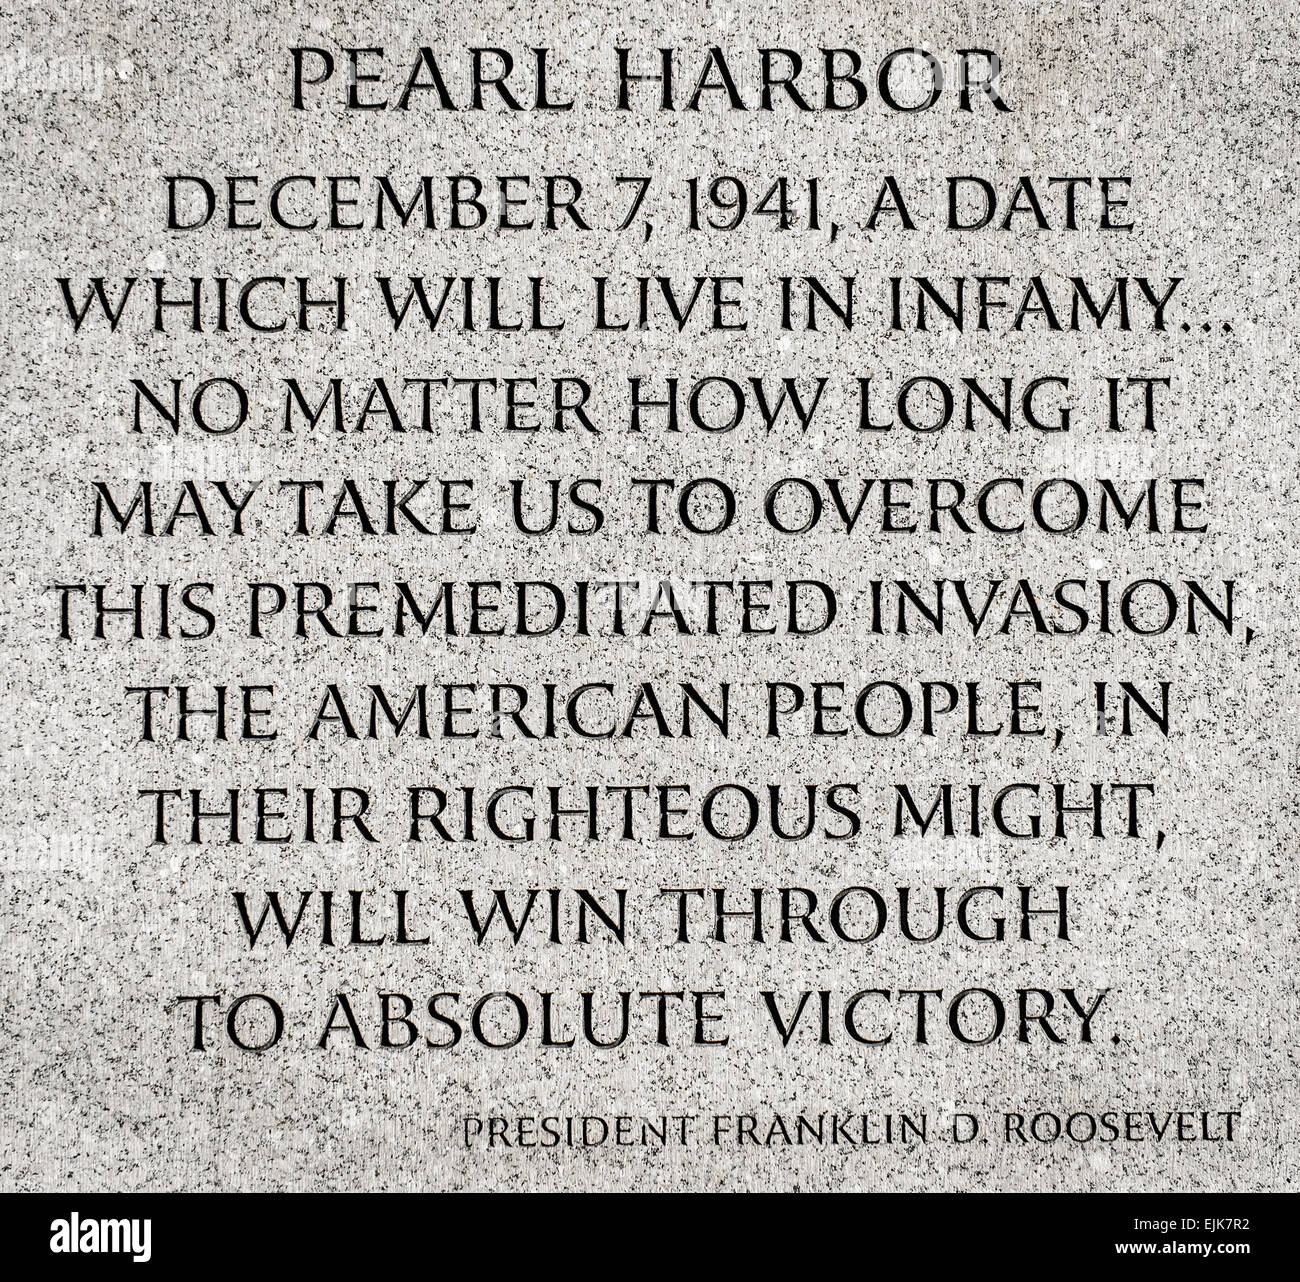 franklin roosevelt pearl harbor address Franklin delano roosevelt's famous day of infamy speech after the pearl  harbor attack almost didn't include the famous phrase.